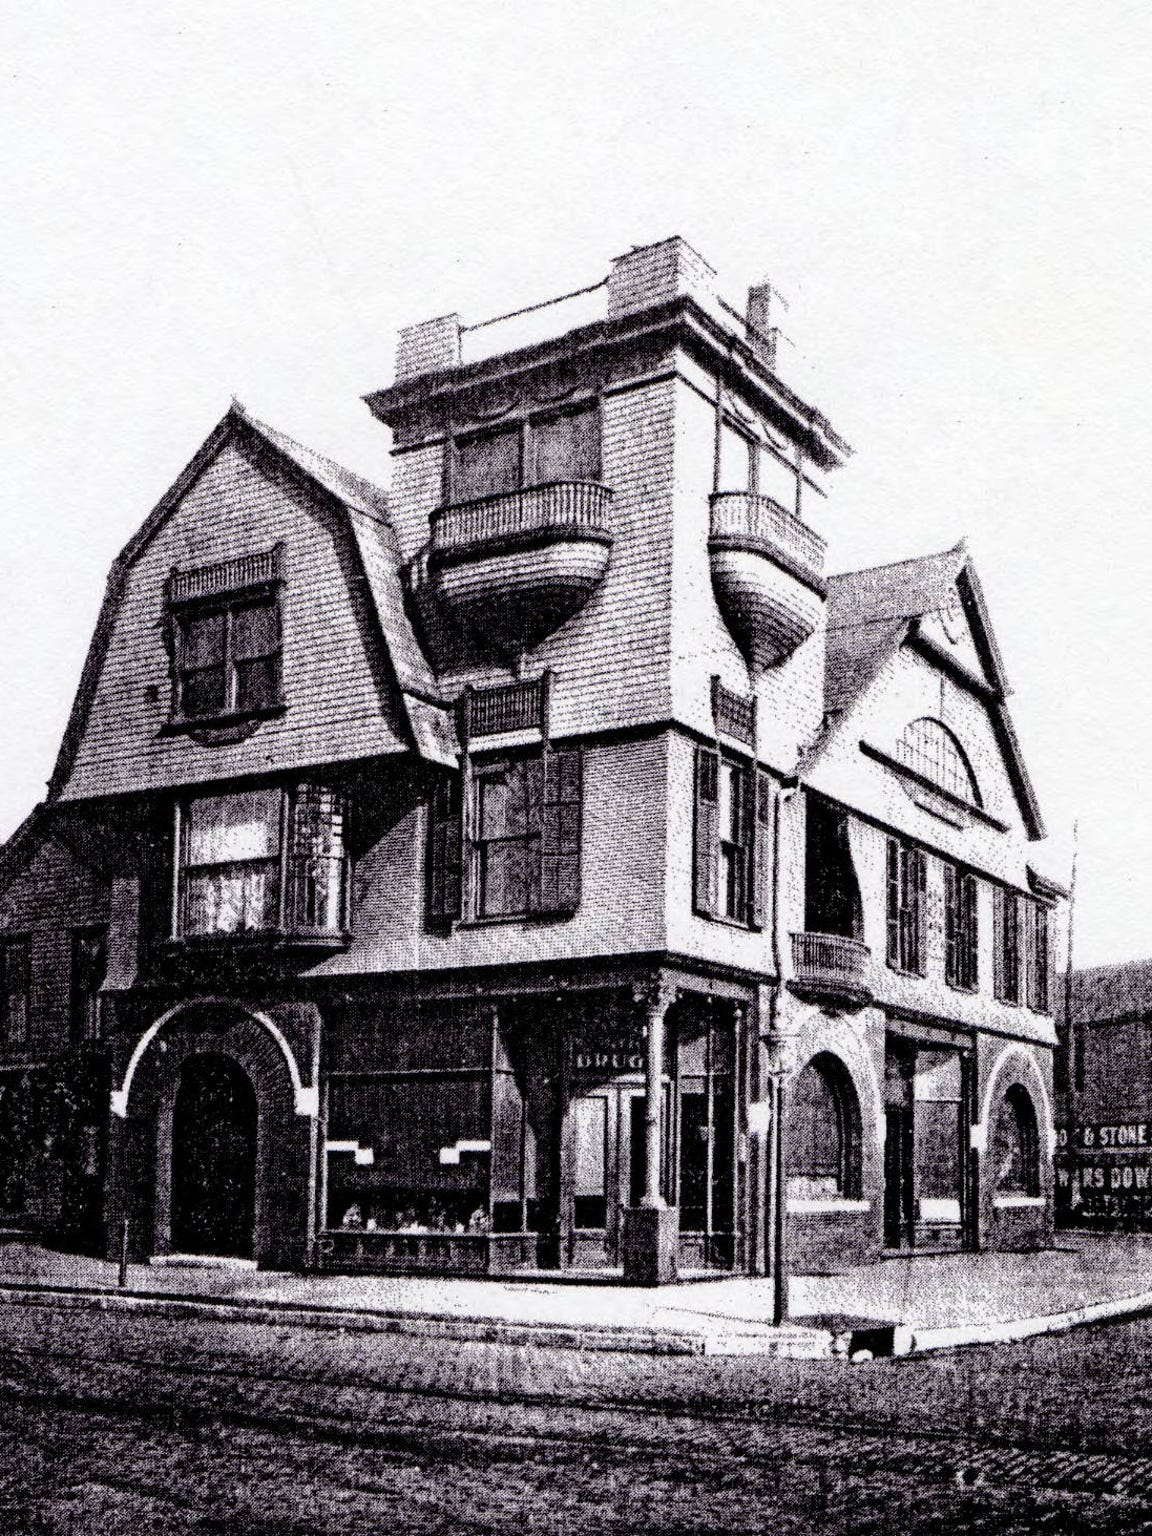 George W. Haynie's drug store at Second Street and Adams Avenue in Evansville around 1890. Haynie's Corner is named after Haynie and his well-known drug store. The building was damaged by flood in the 1930s and destroyed by fire in the 1940s.